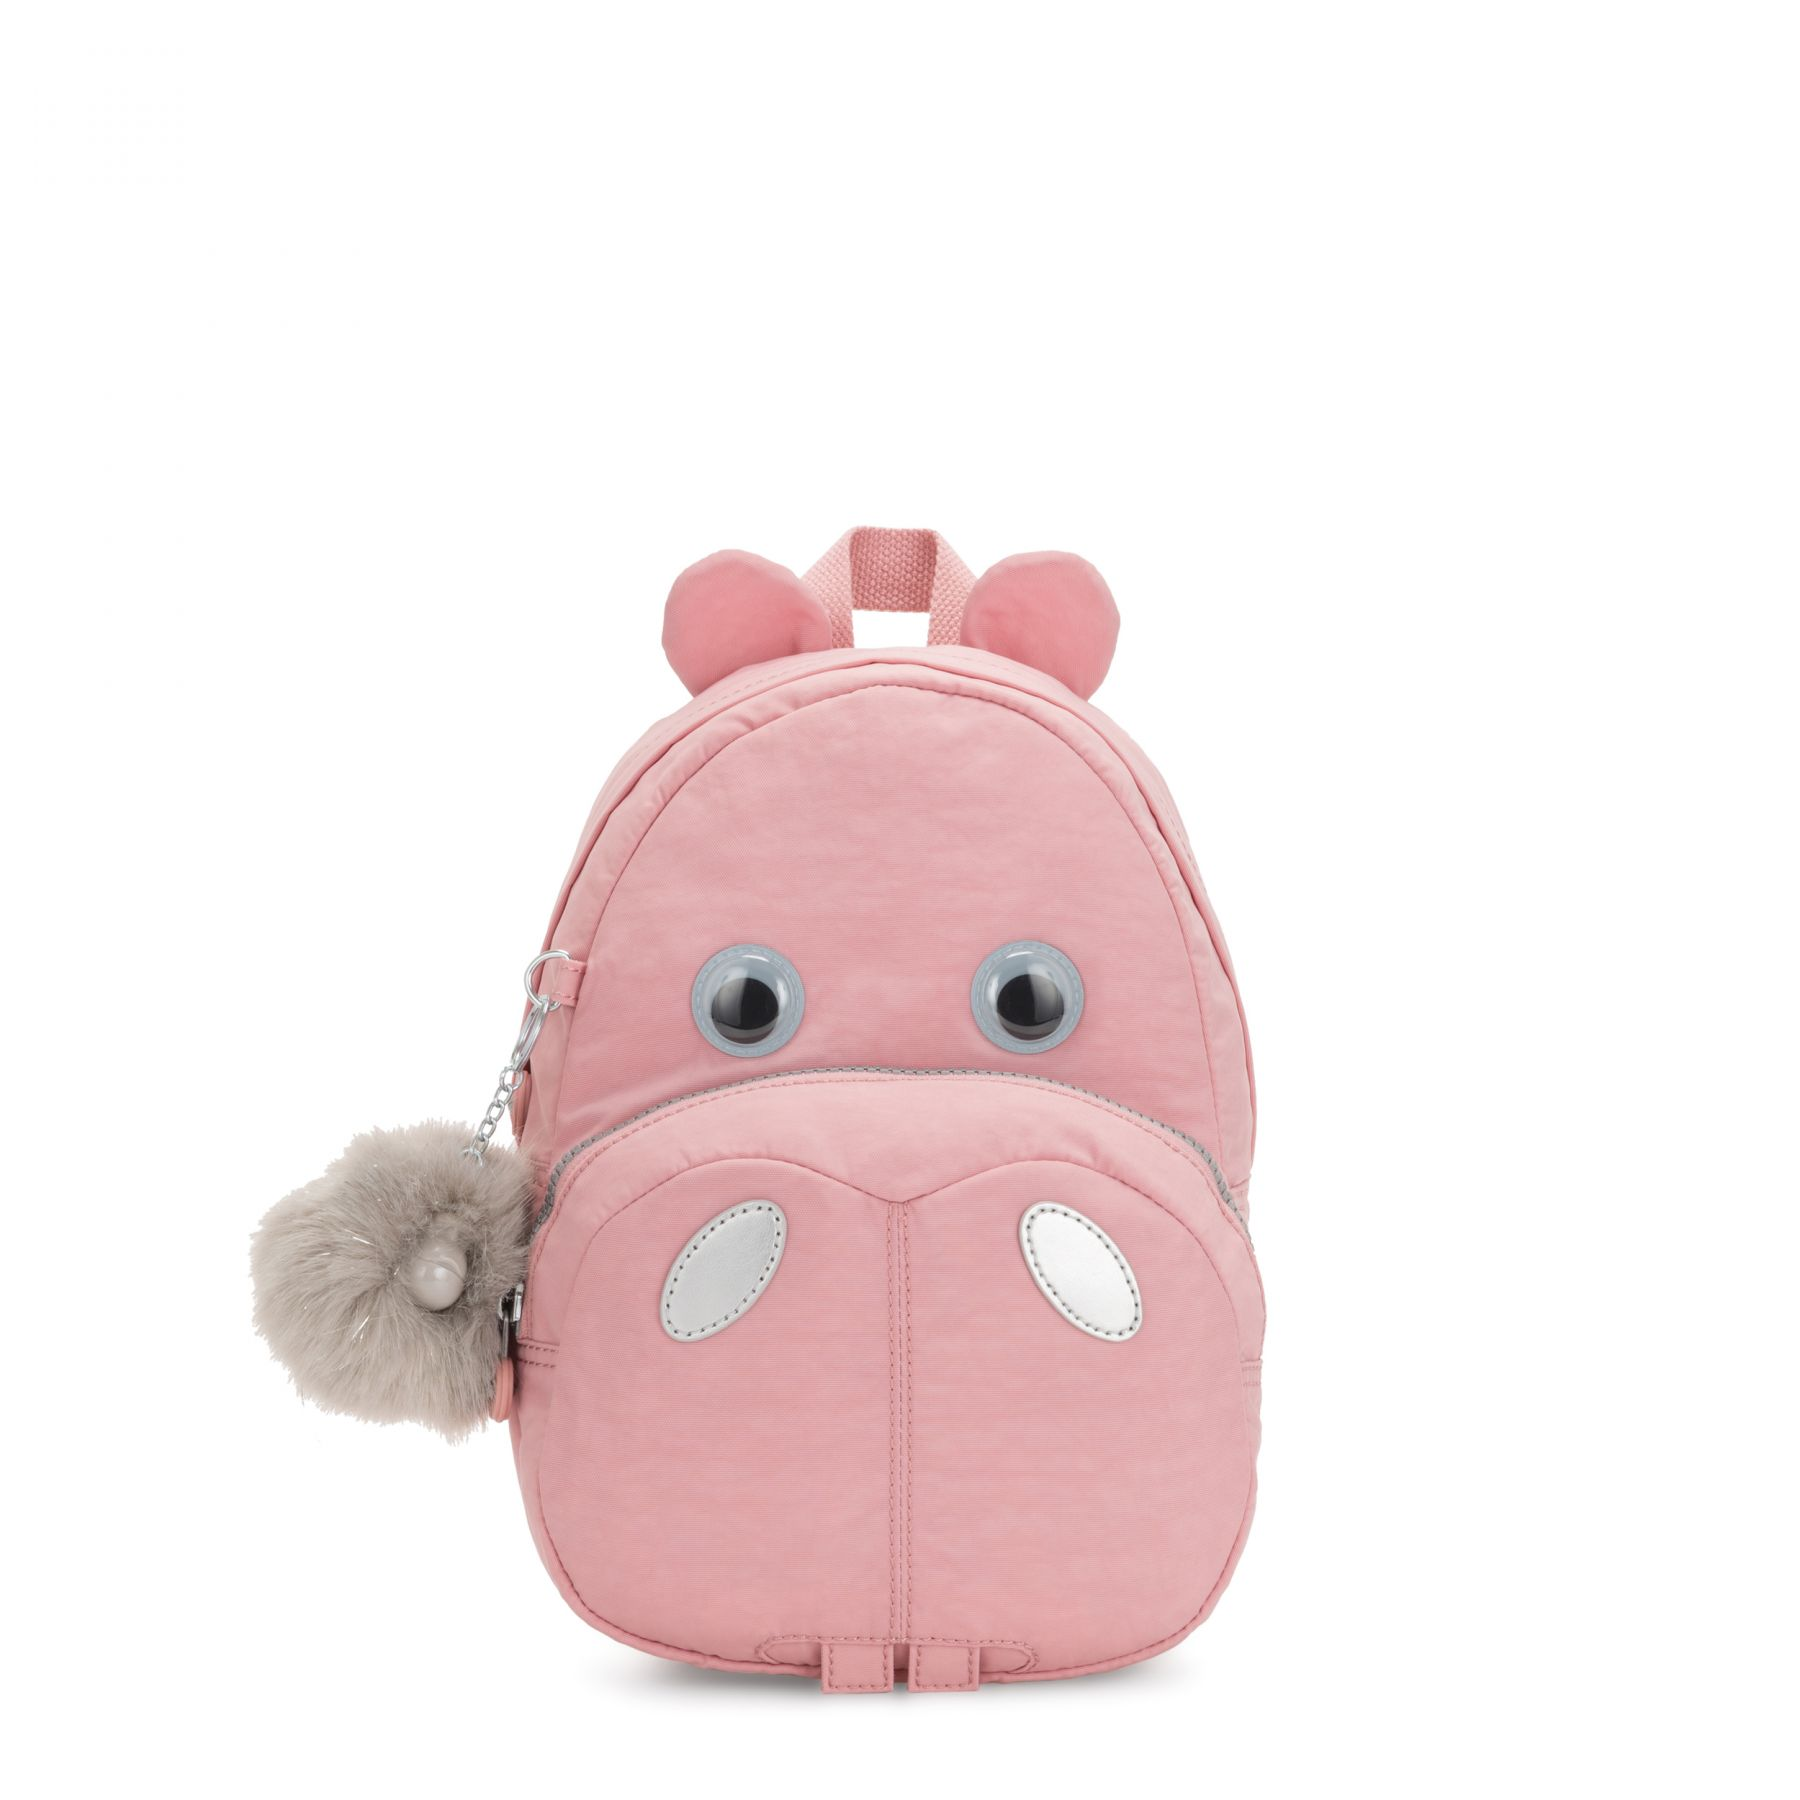 HIPPO BACKPACKS by Kipling - Front view